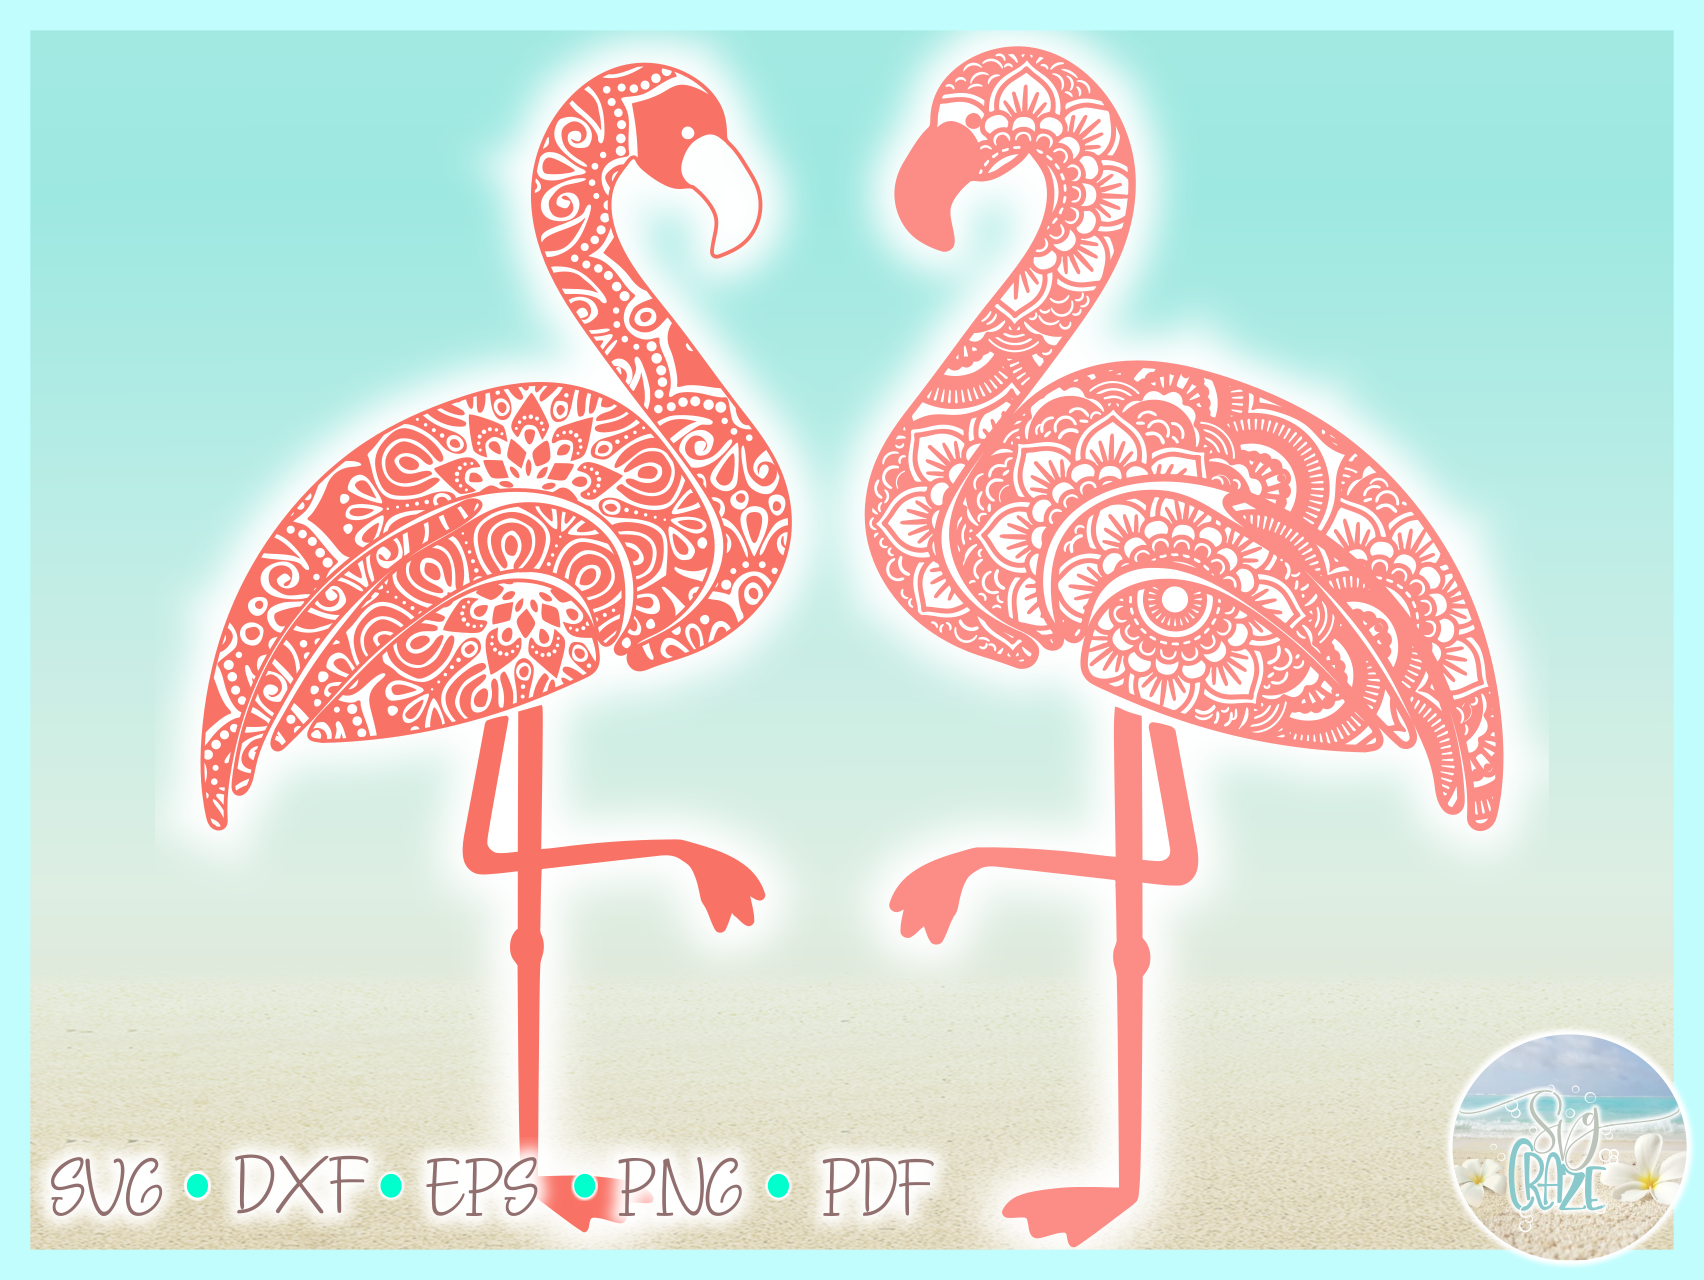 Flamingo Mandala Zentangle Svg Dxf Eps Png Pdf Files example image 3